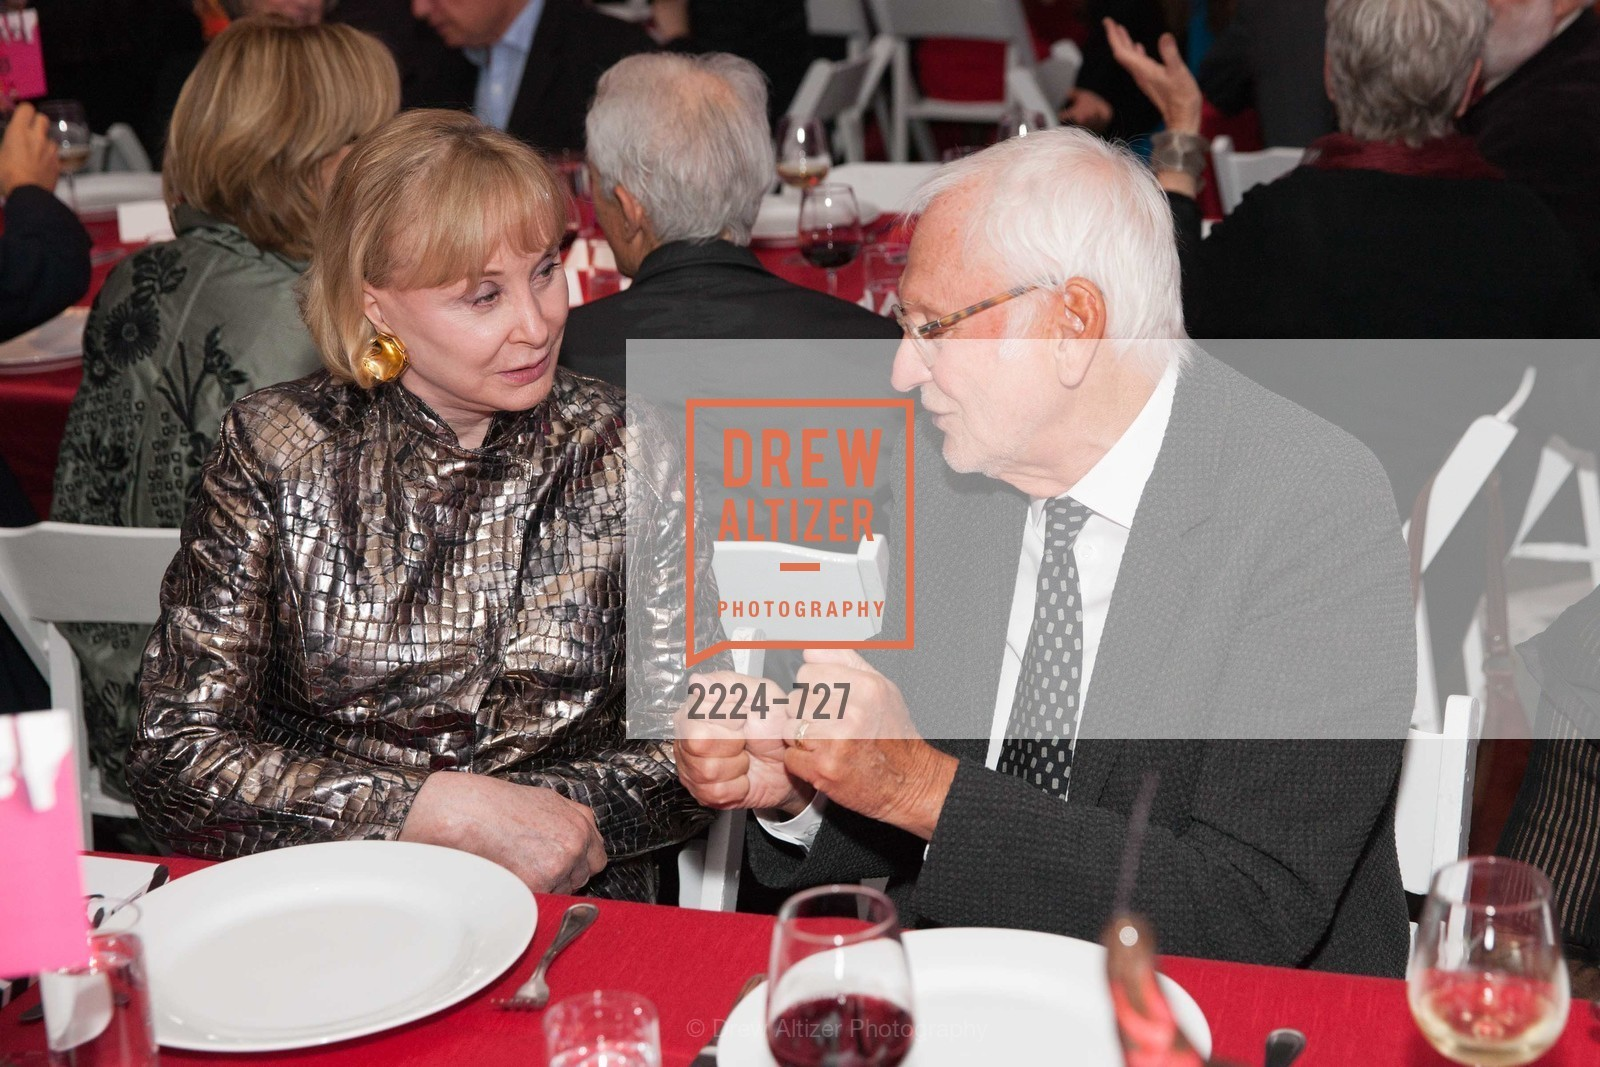 Shelby Gans, SAN FRANCISCO ART INSTITUTE Gala Honoring Art Visionary and Advocate ROSELYNE CHROMAN SWIG, US, May 13th, 2015,Drew Altizer, Drew Altizer Photography, full-service agency, private events, San Francisco photographer, photographer california